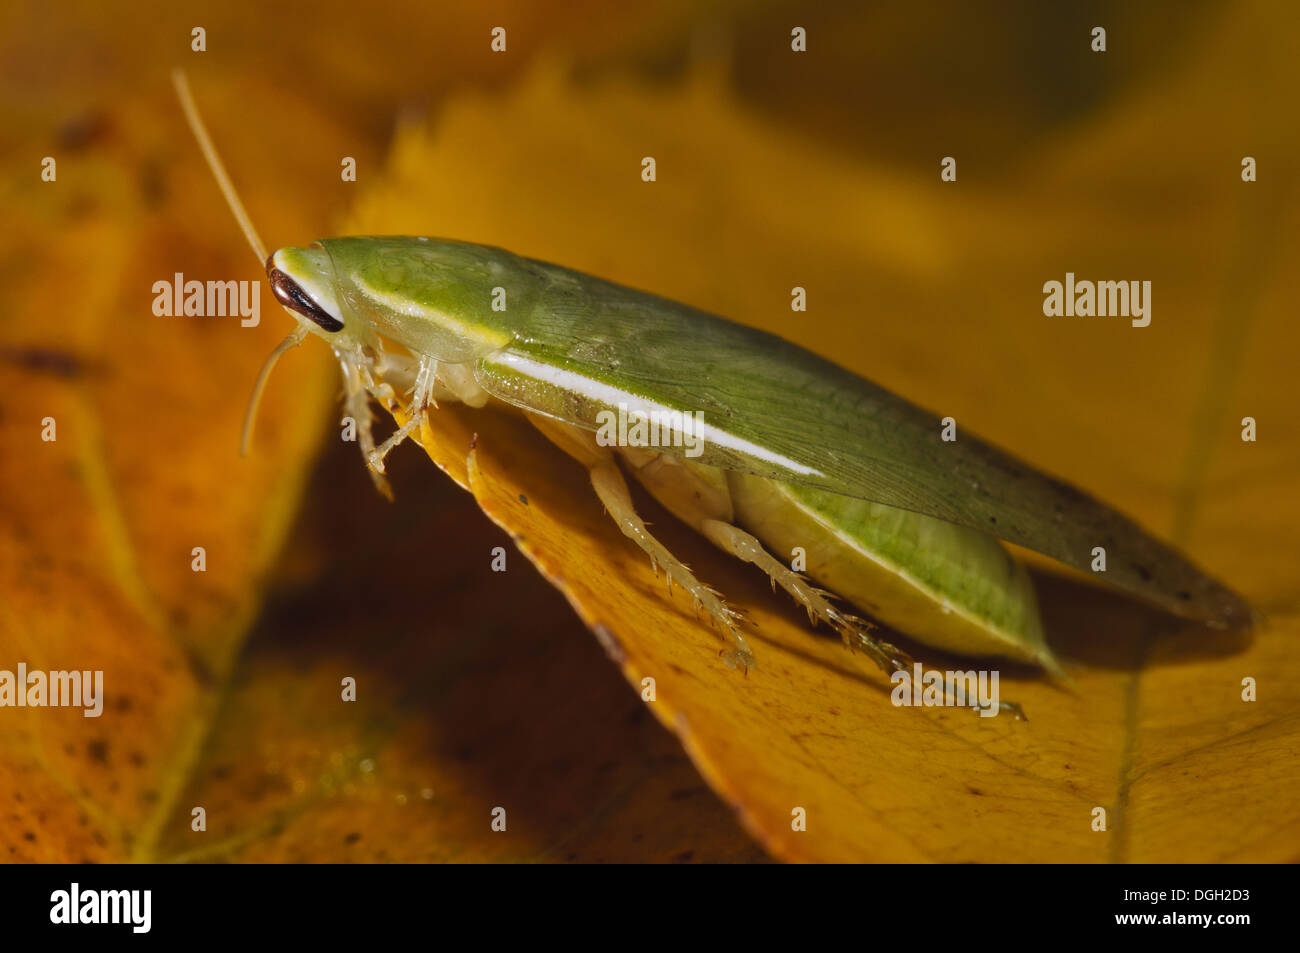 Green Banana Cockroach (Panchlora nivea) introduced species stowaway within shipment of produce most likely bananas adult - Stock Image